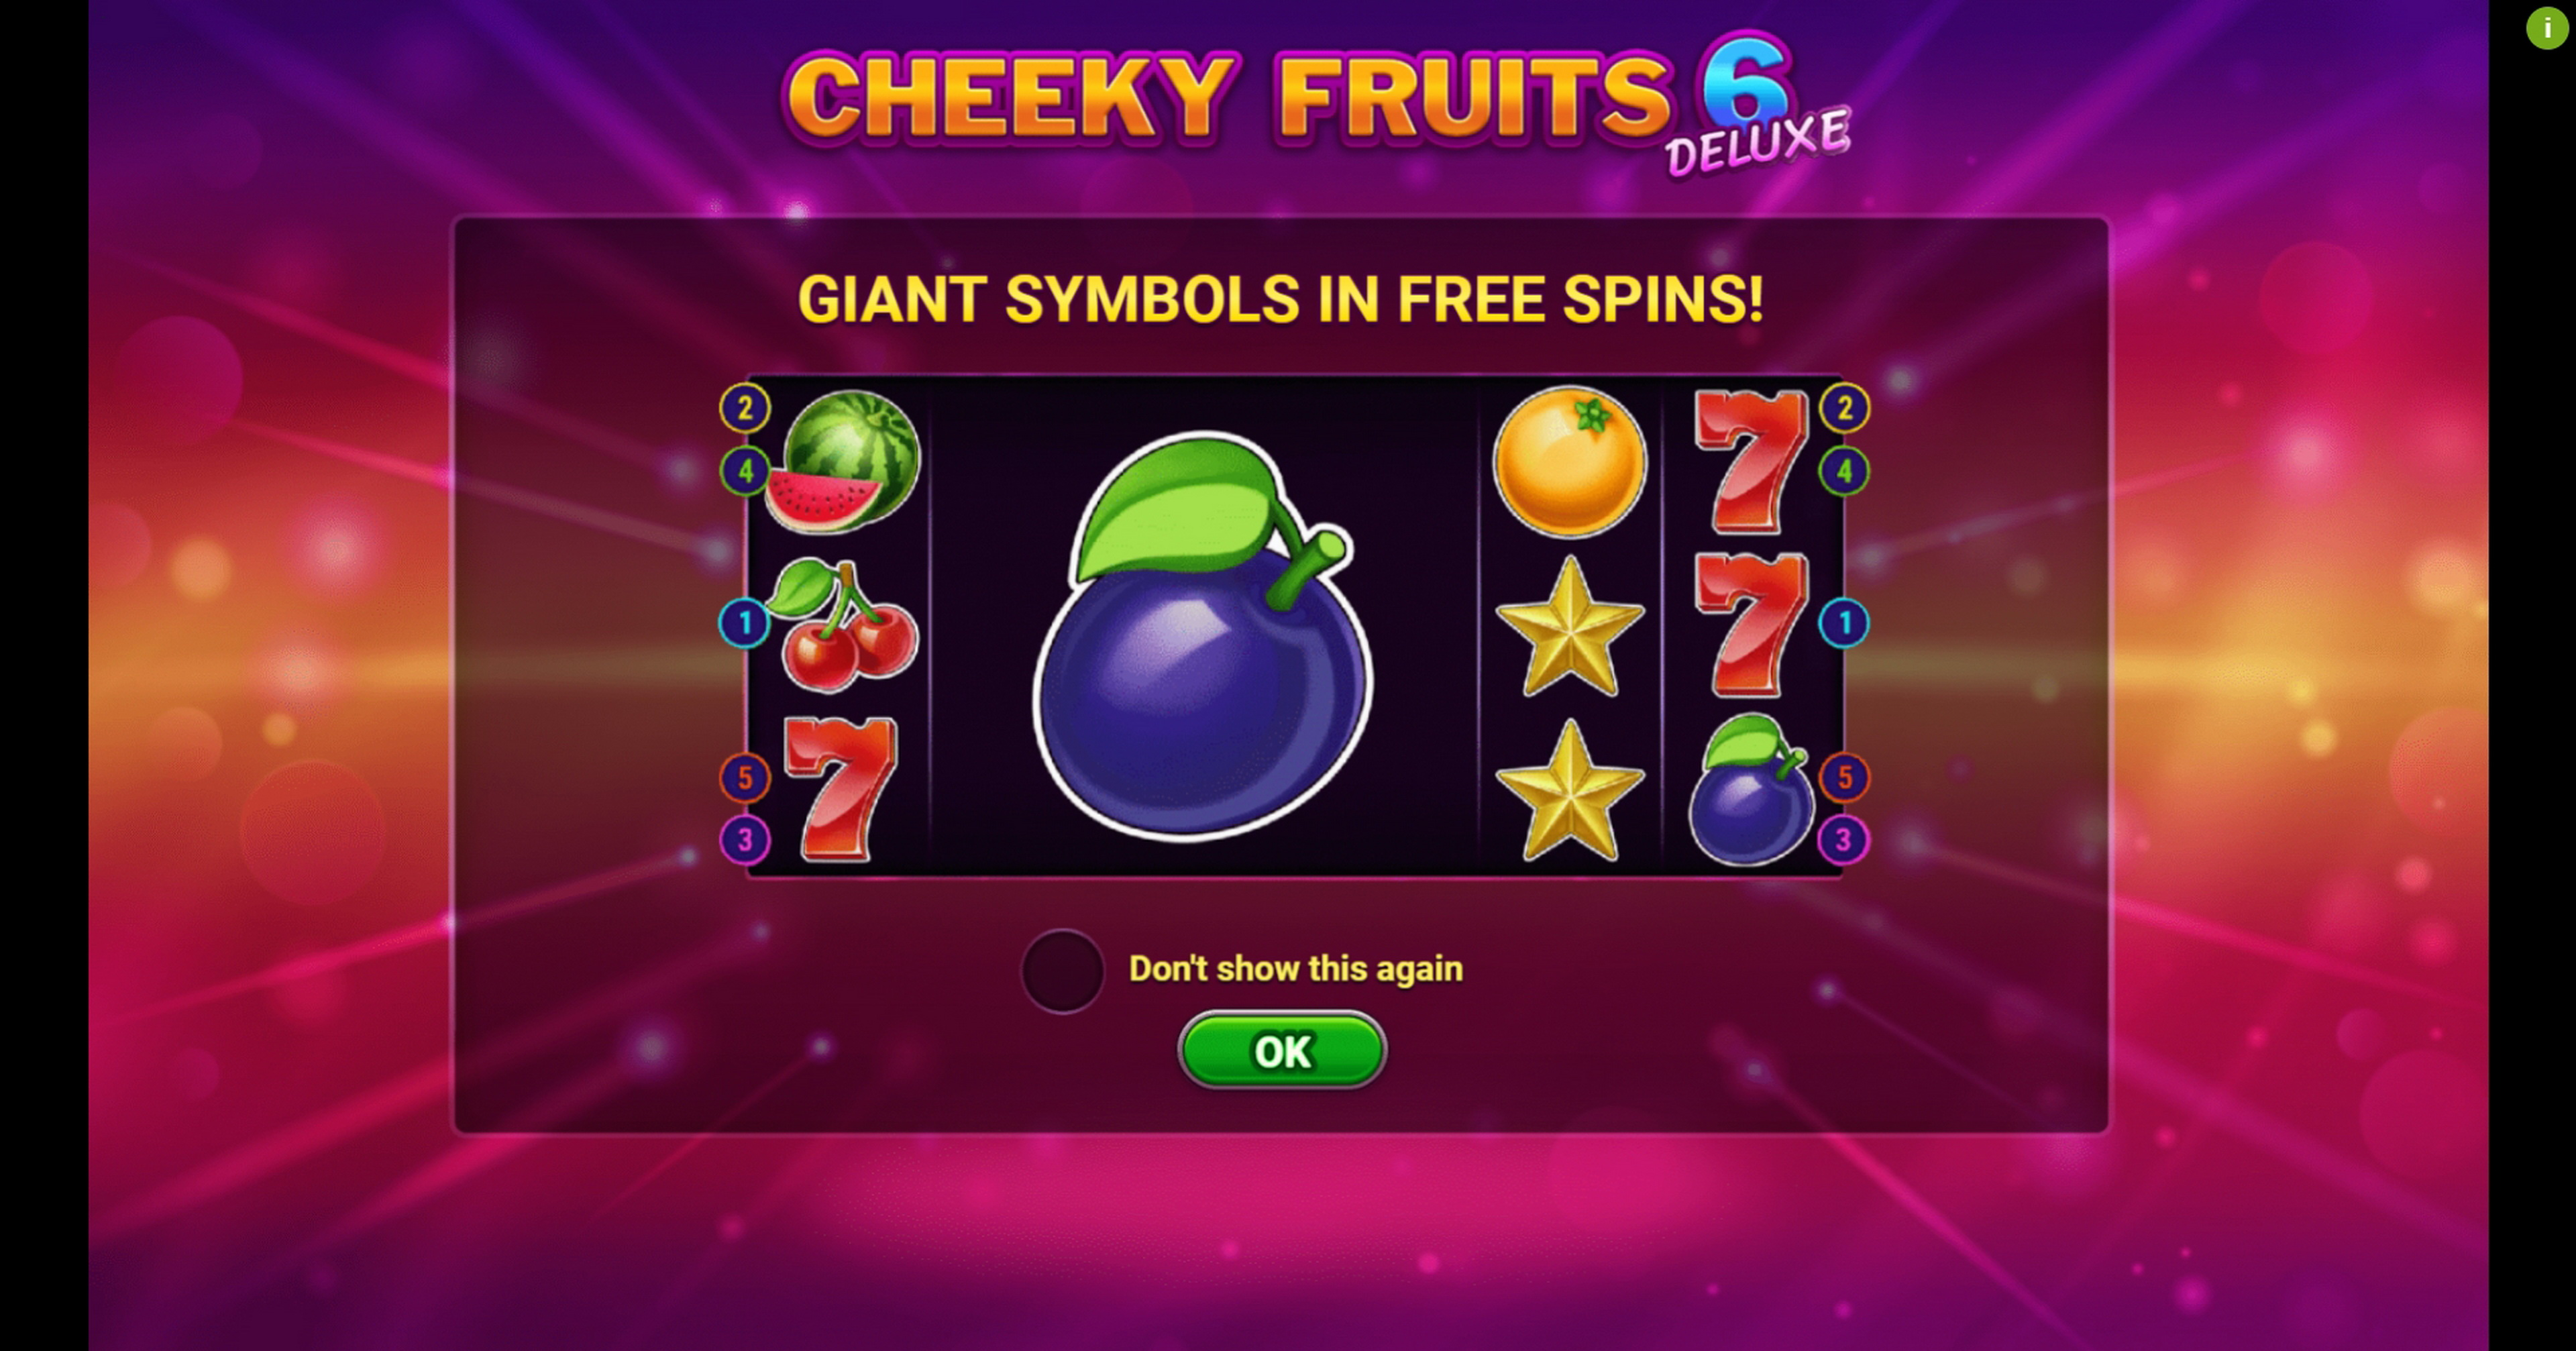 Play Cheeky Fruits 6 Deluxe Free Casino Slot Game by Gluck Games